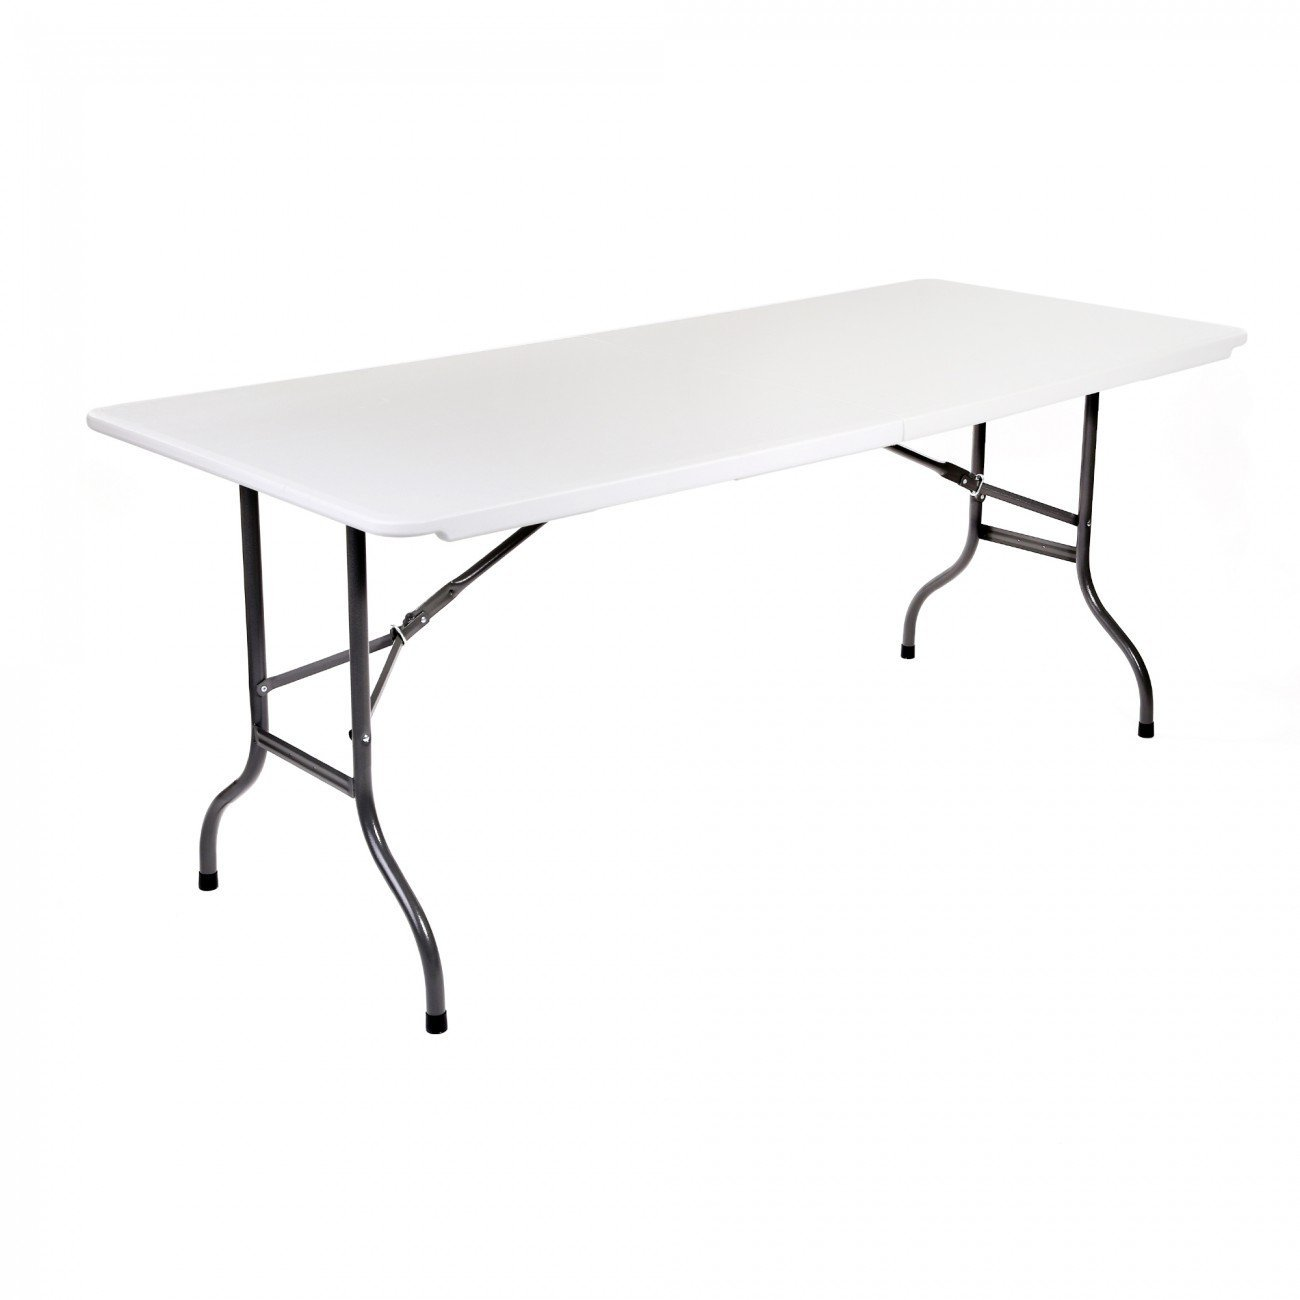 Table Pliante Exterieur Acheter Table Pliante Table Pliable Table Rabattable Table Escamotable